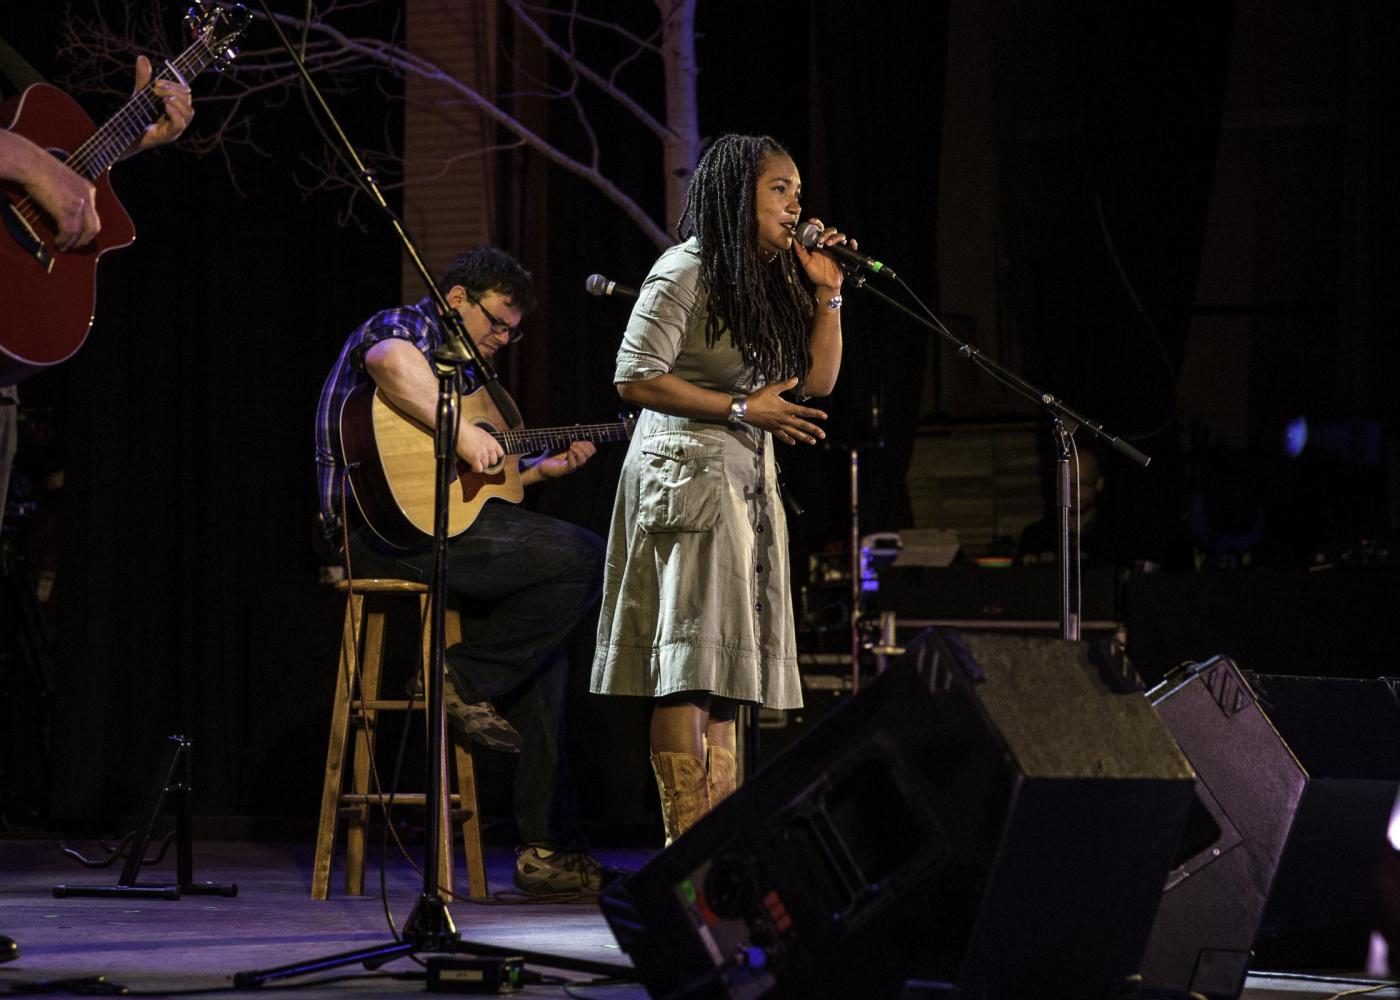 Miko Marks, based out of Oakland, California, performs at a Gathering musical showcase.